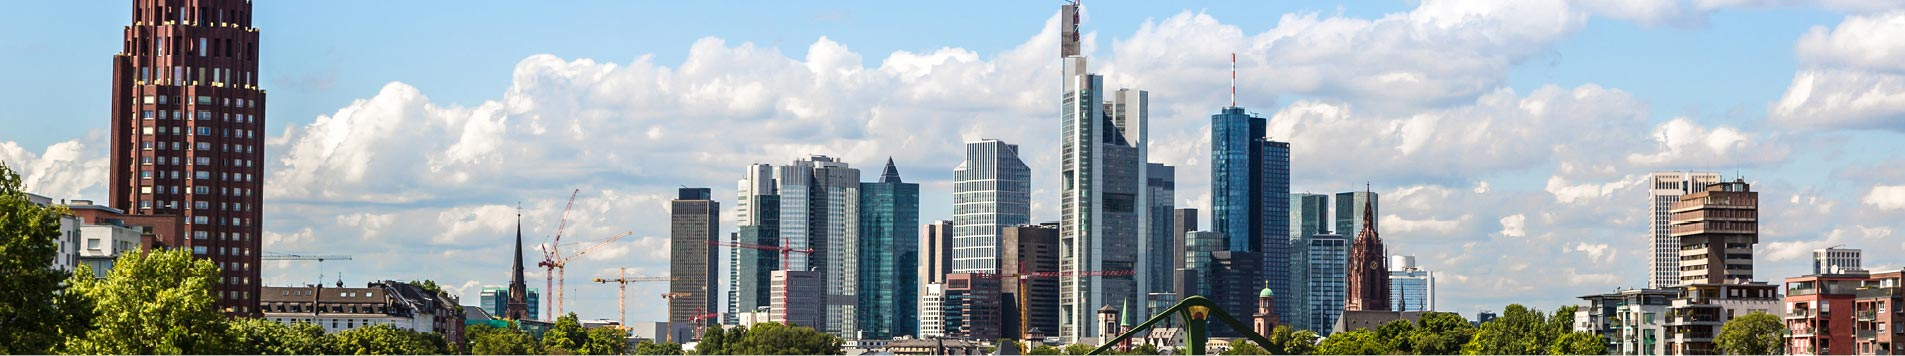 Supervisory Board Reporting Frankfurt City - Germany